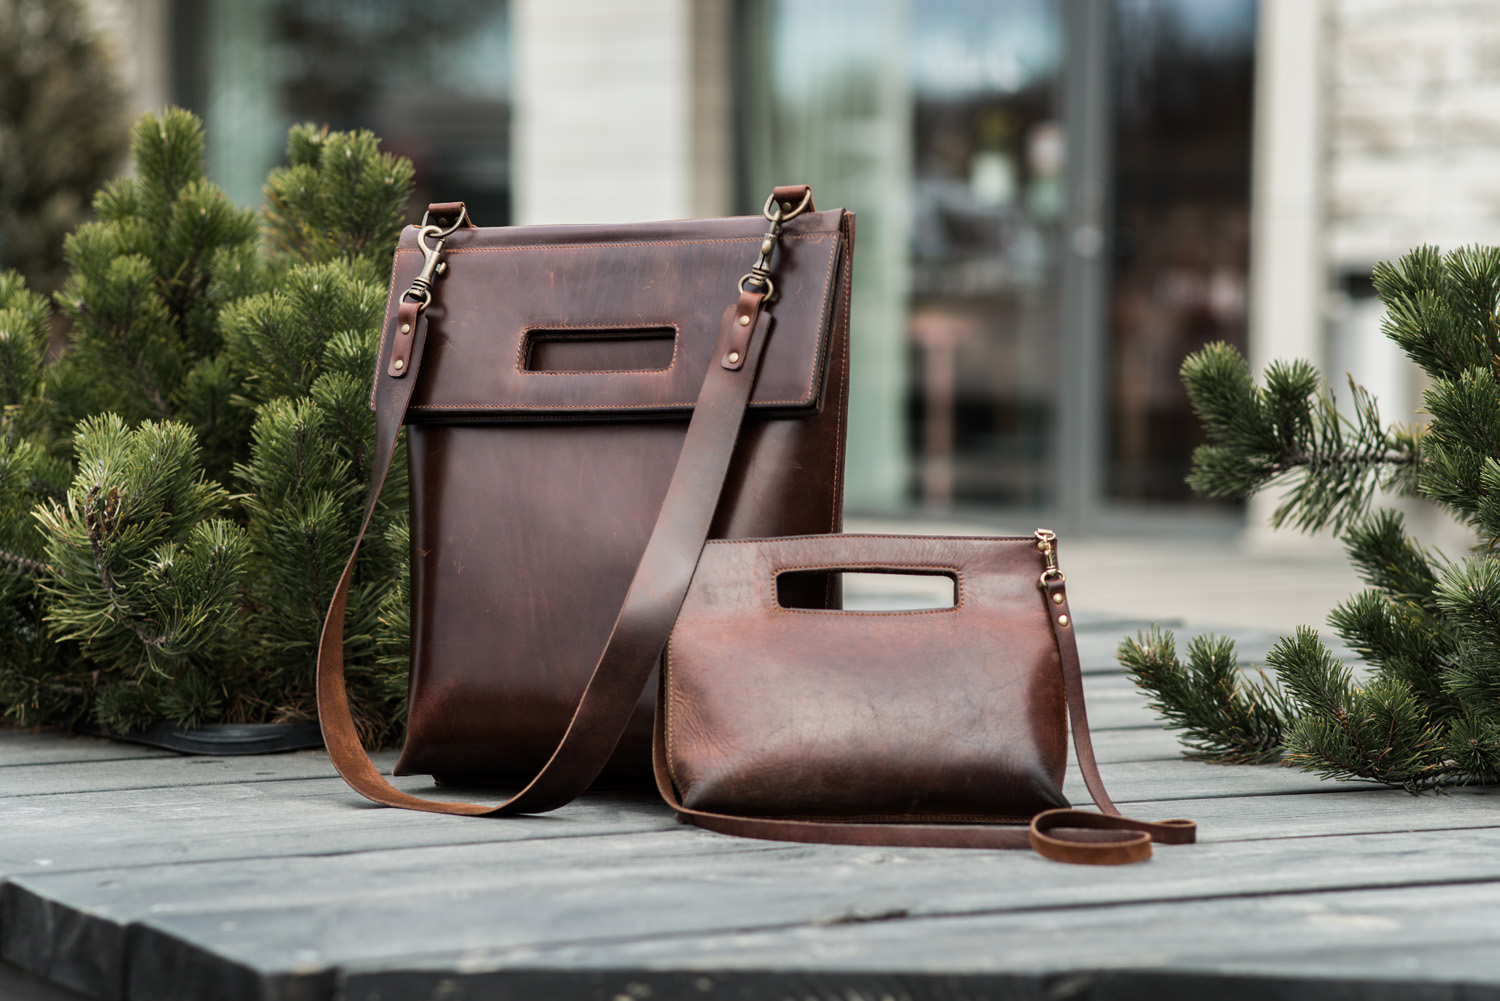 Leather bags for Monika Jrg by Stella Soomlais photo Tnu Tunnel